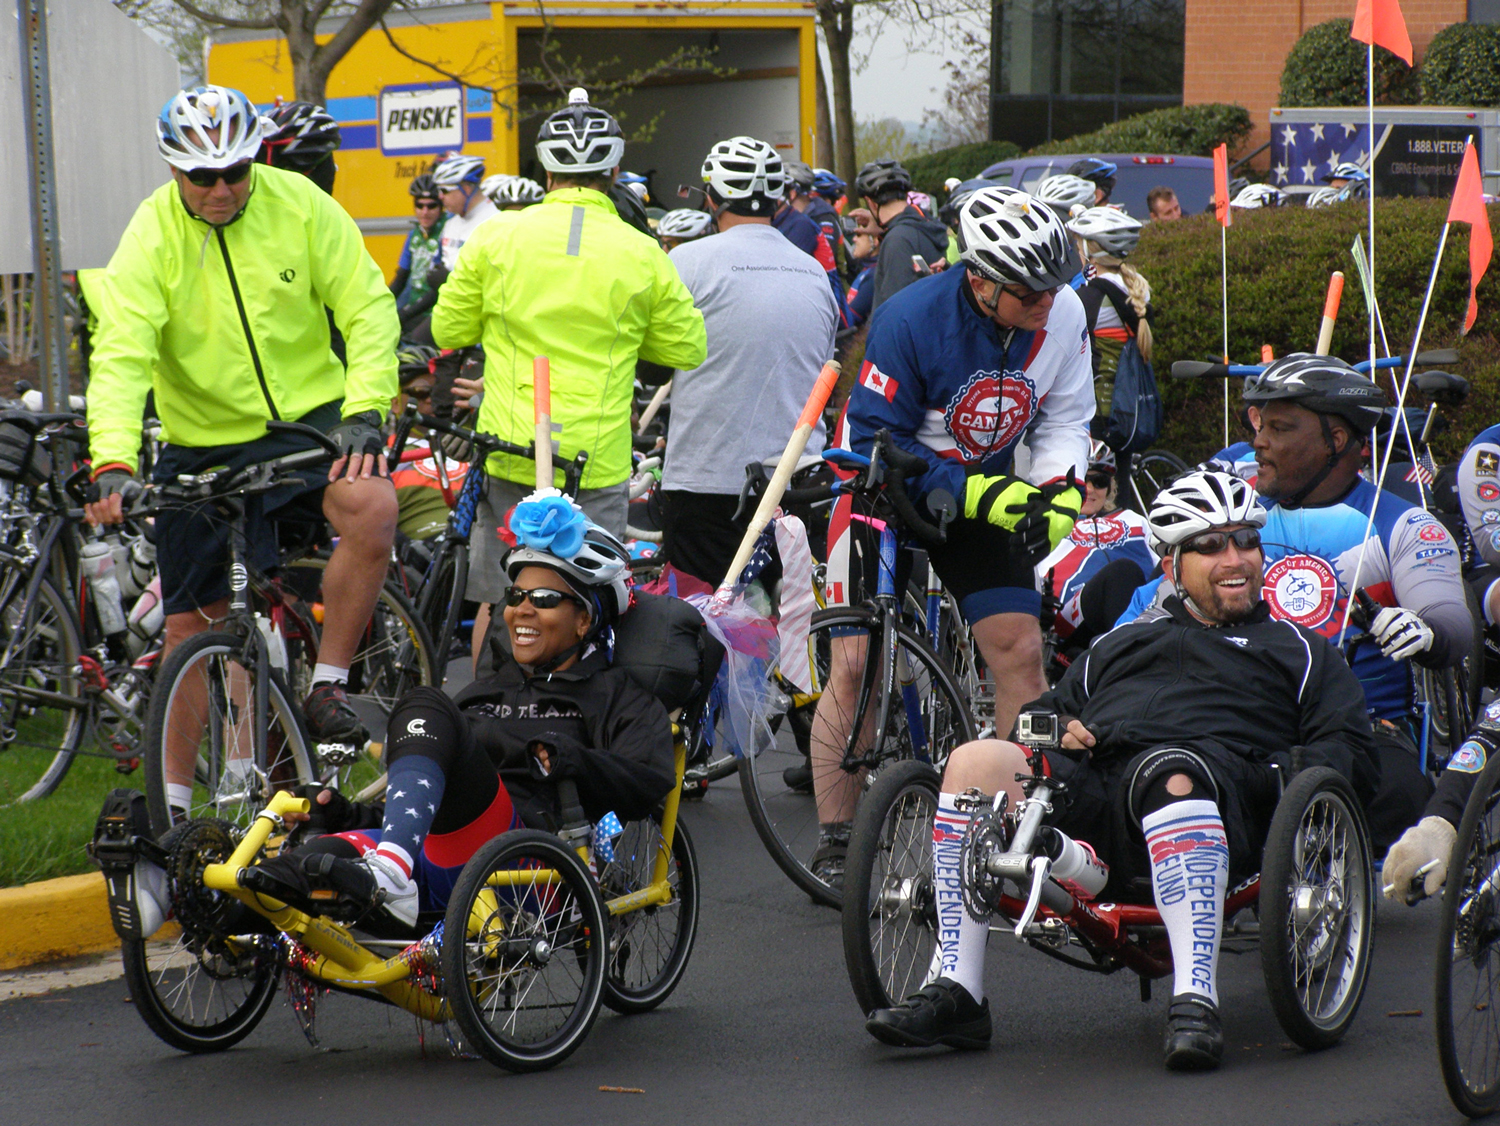 Riders prepare for the start of the April 26 ride.